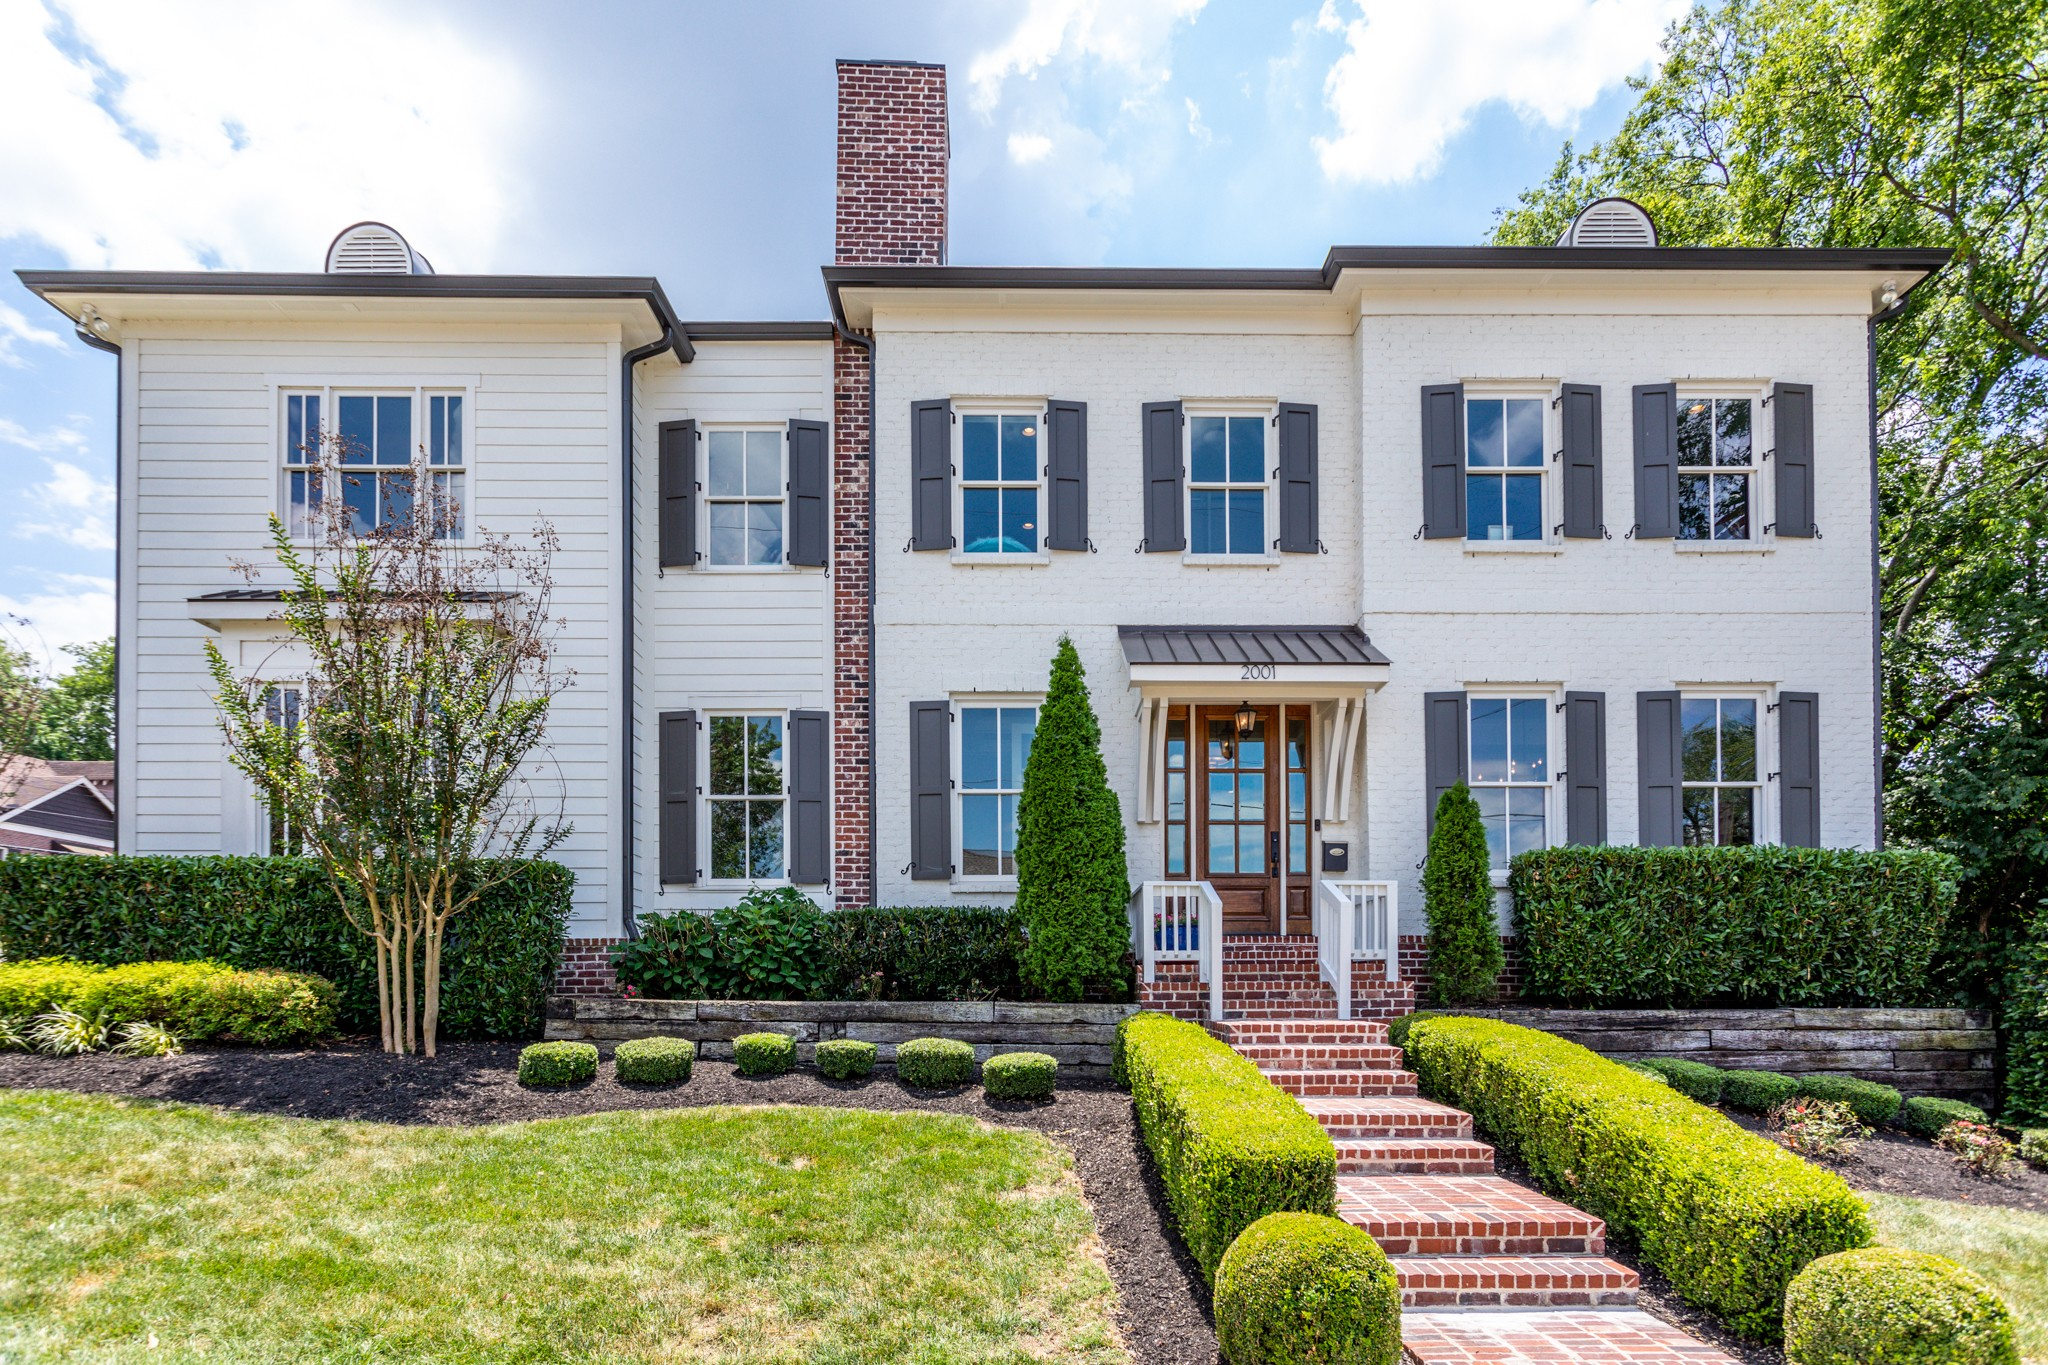 First showing 6/24 at 4:30. Nearly new Hillsboro Village stunner built in 2015. Classic architecture and charm with new home features. Hardwoods, 10' ceilings and master on main level*Honed granite & marble counters in kitchen opening to den, screened porch*main level and second level family rooms plus a bonus room, Hunter Douglas motorized shades.